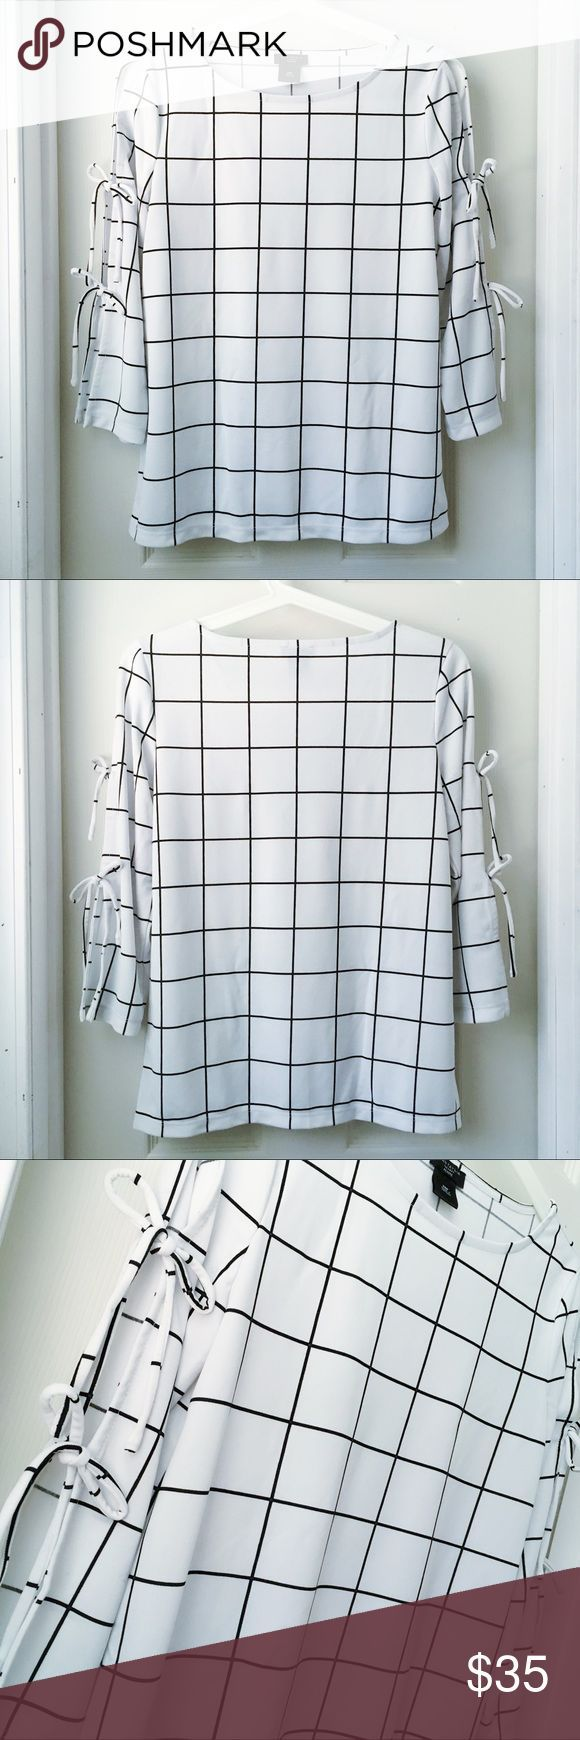 Host Pick Ann Taylor Black  White Grid Blouse New Without Tag on  Host Pick Ann Taylor Black  White Grid Blouse New Without Tag on